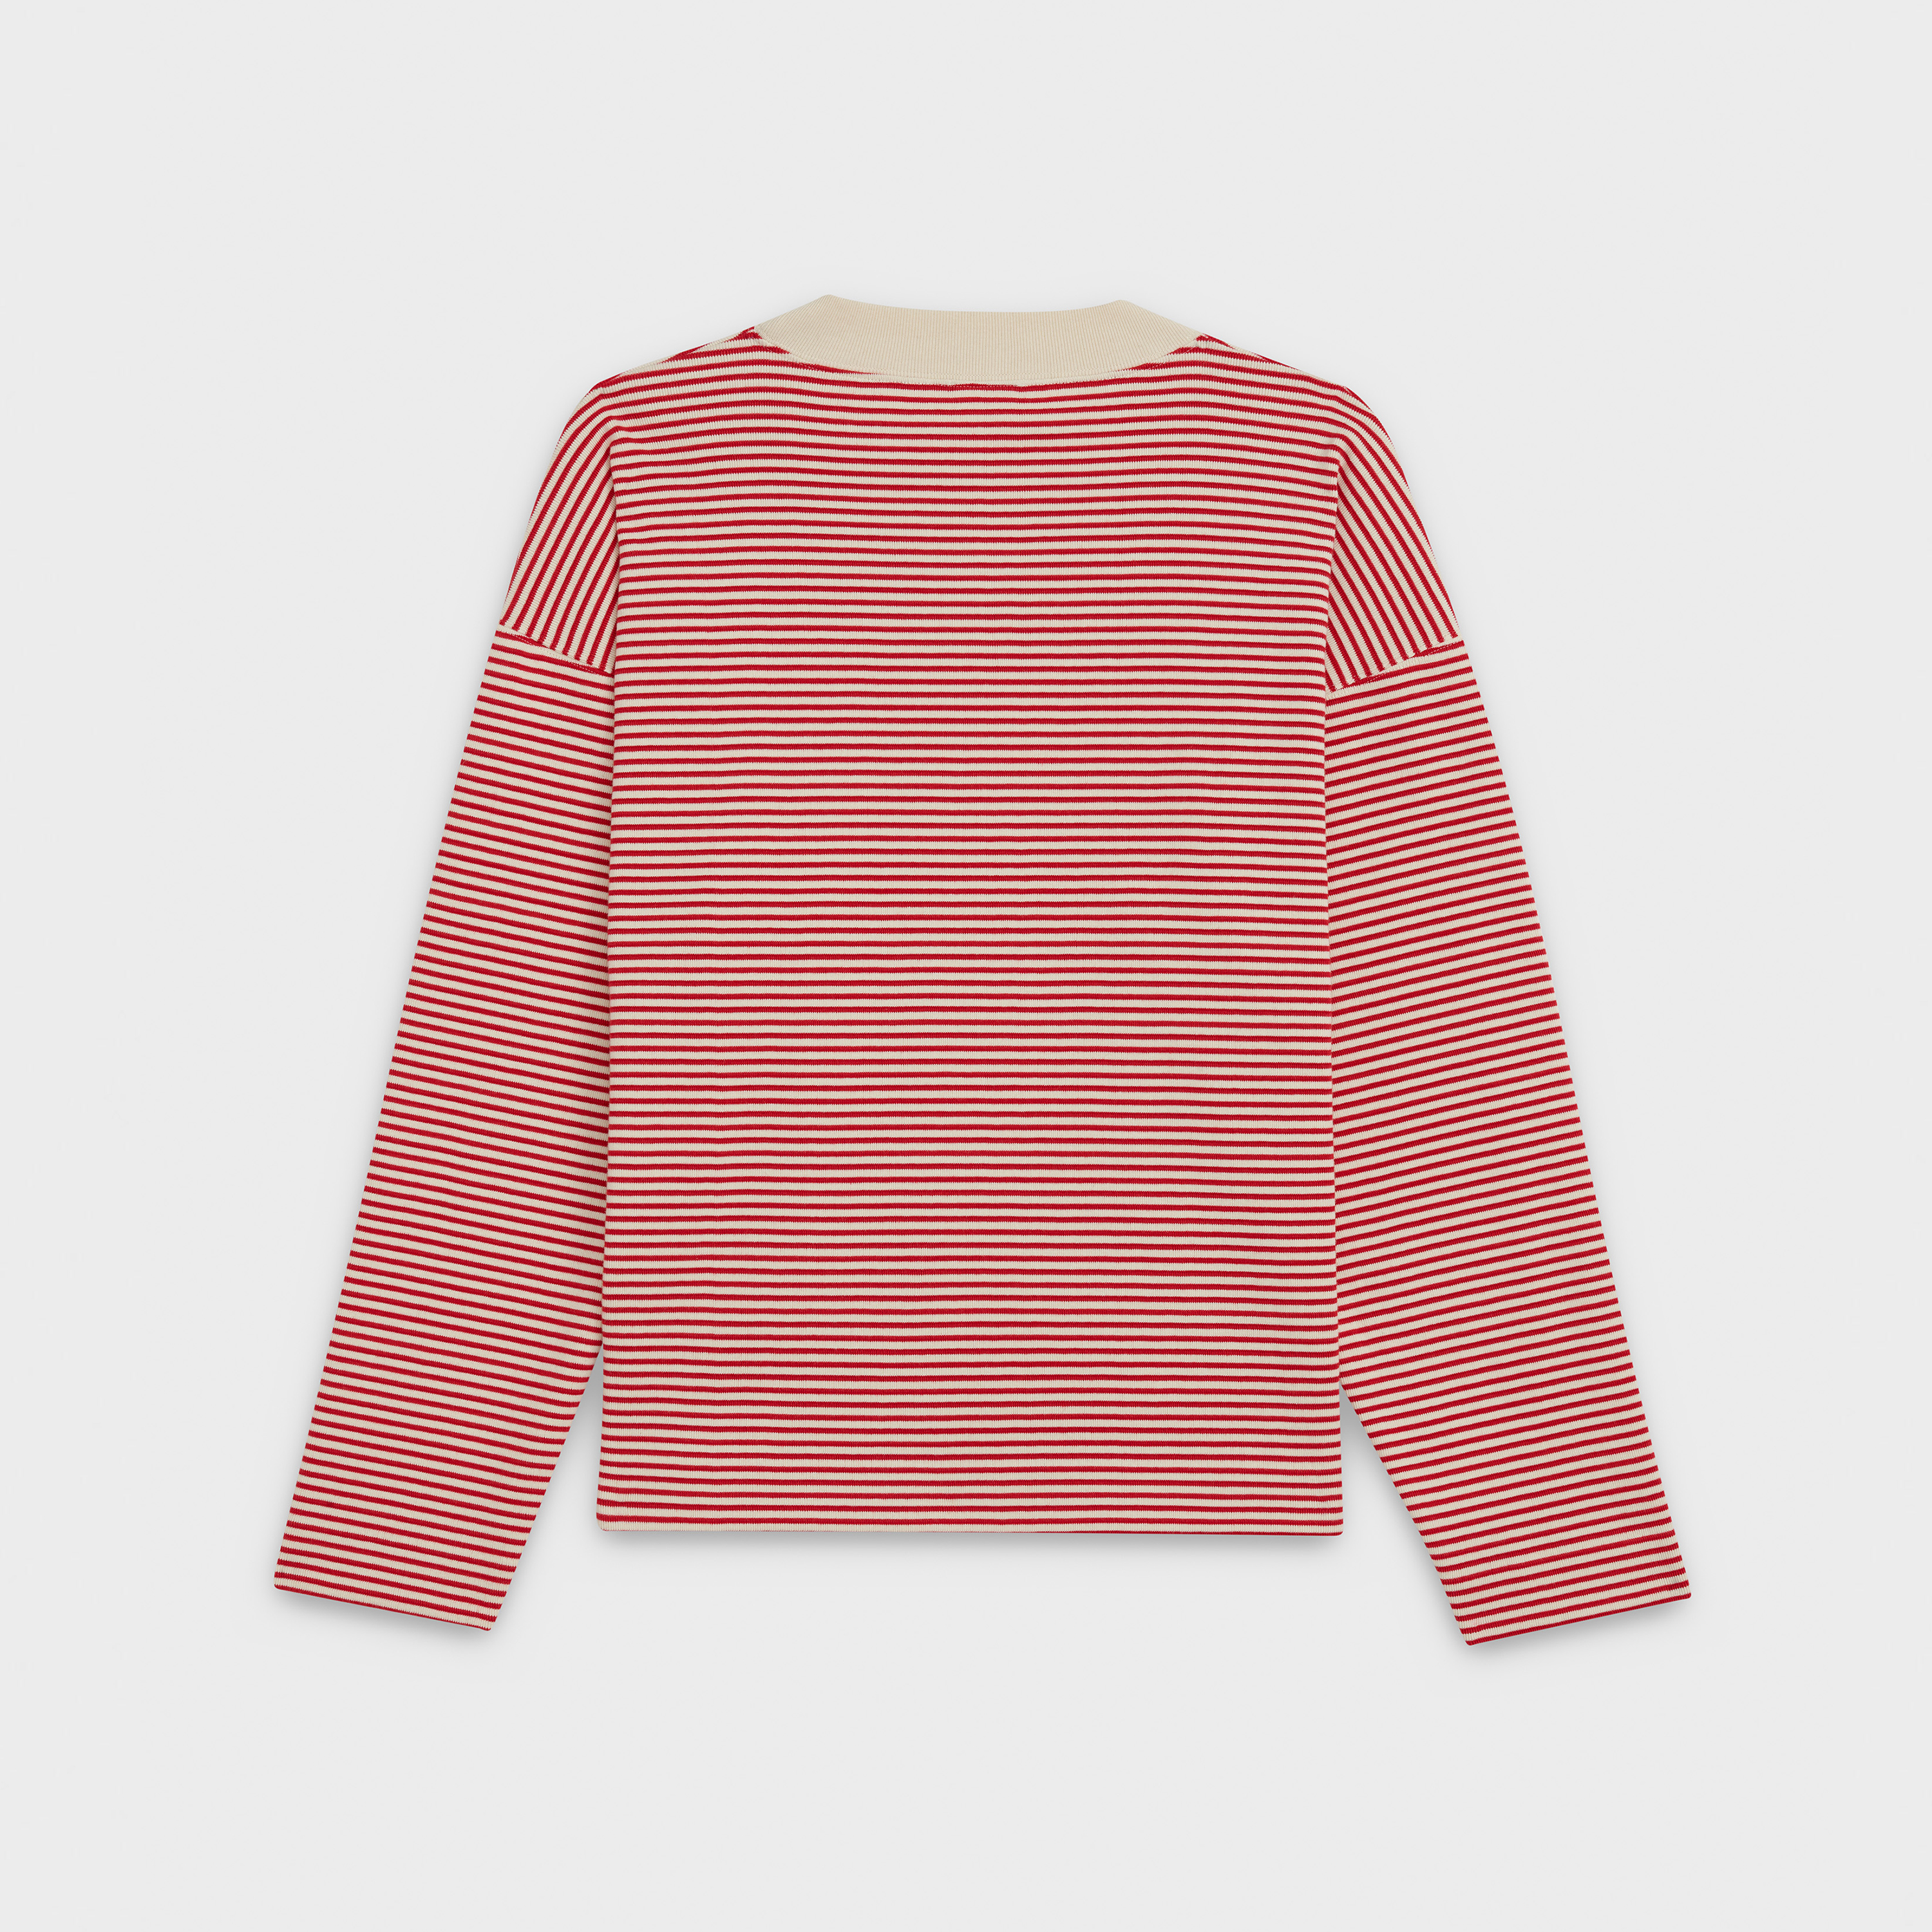 oversize t-shirt with long sleeves in striped cotton | CELINE